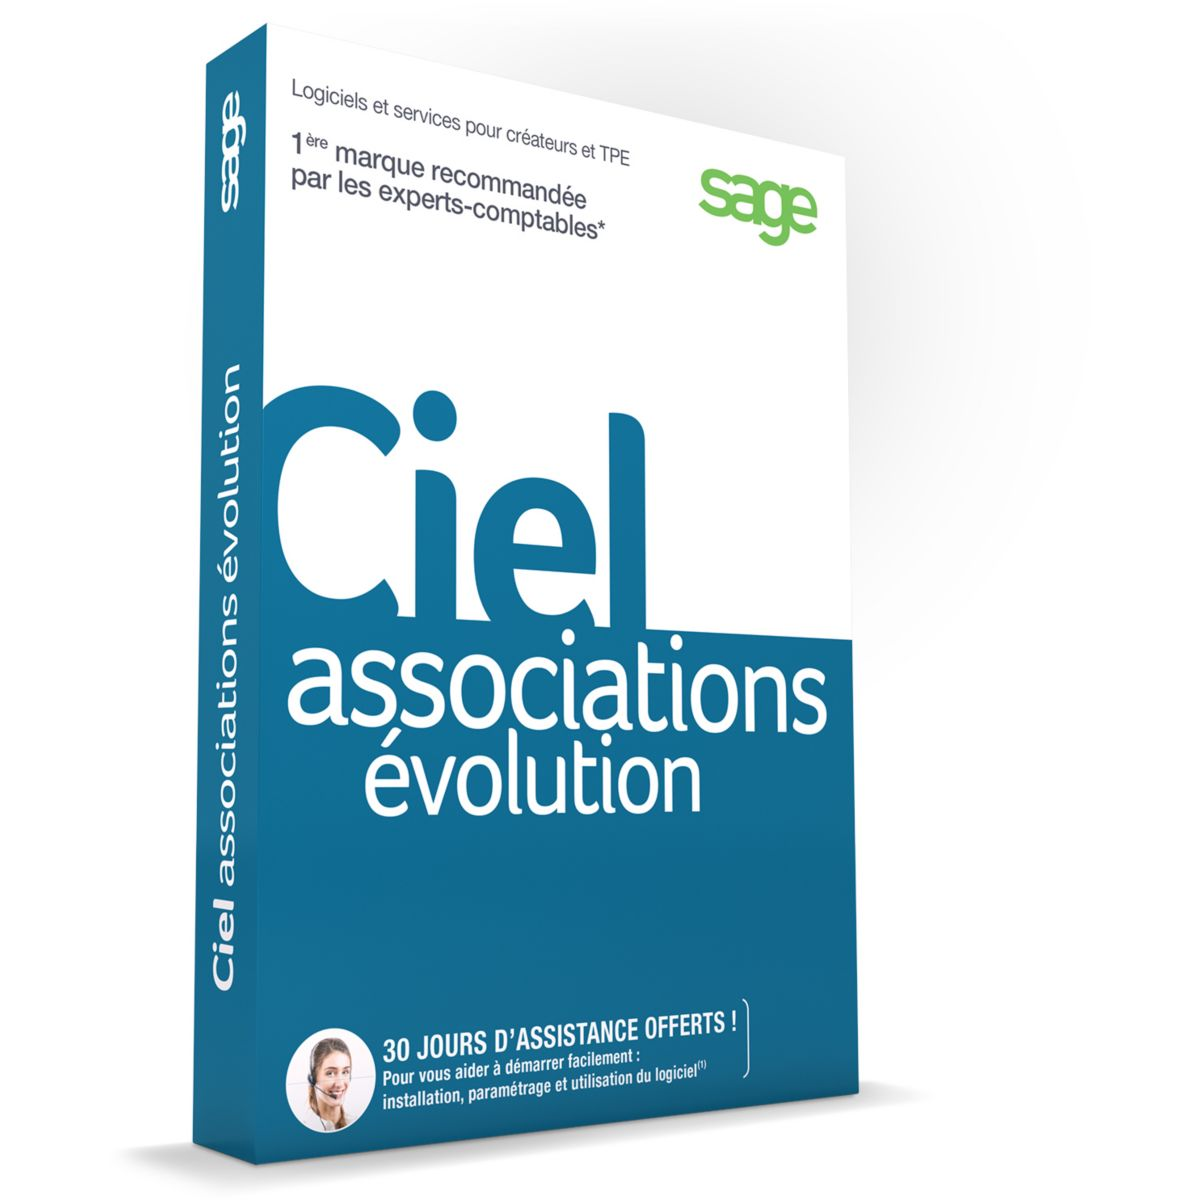 Logiciel pc ciel associations (photo)